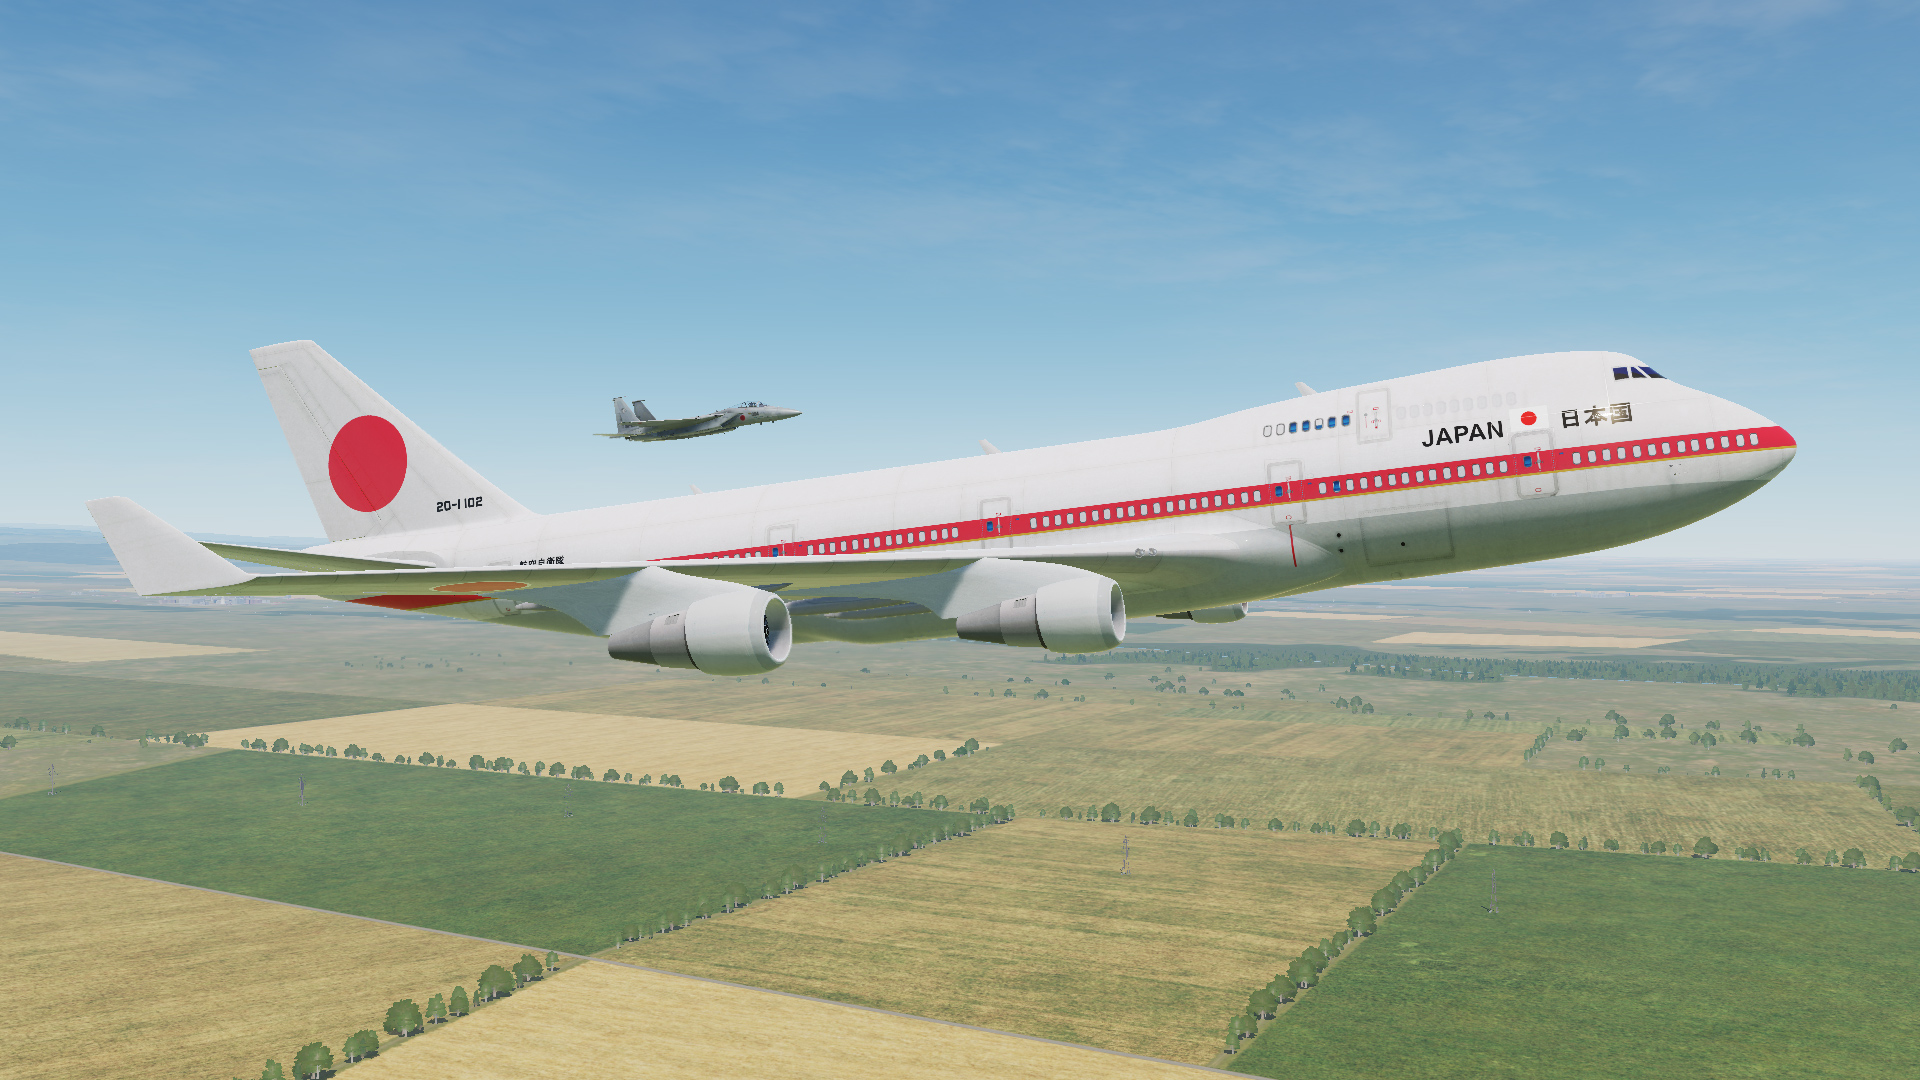 JASDF Special Airlift Group B747-400 Skin Pack for Civil Aircraft Mod